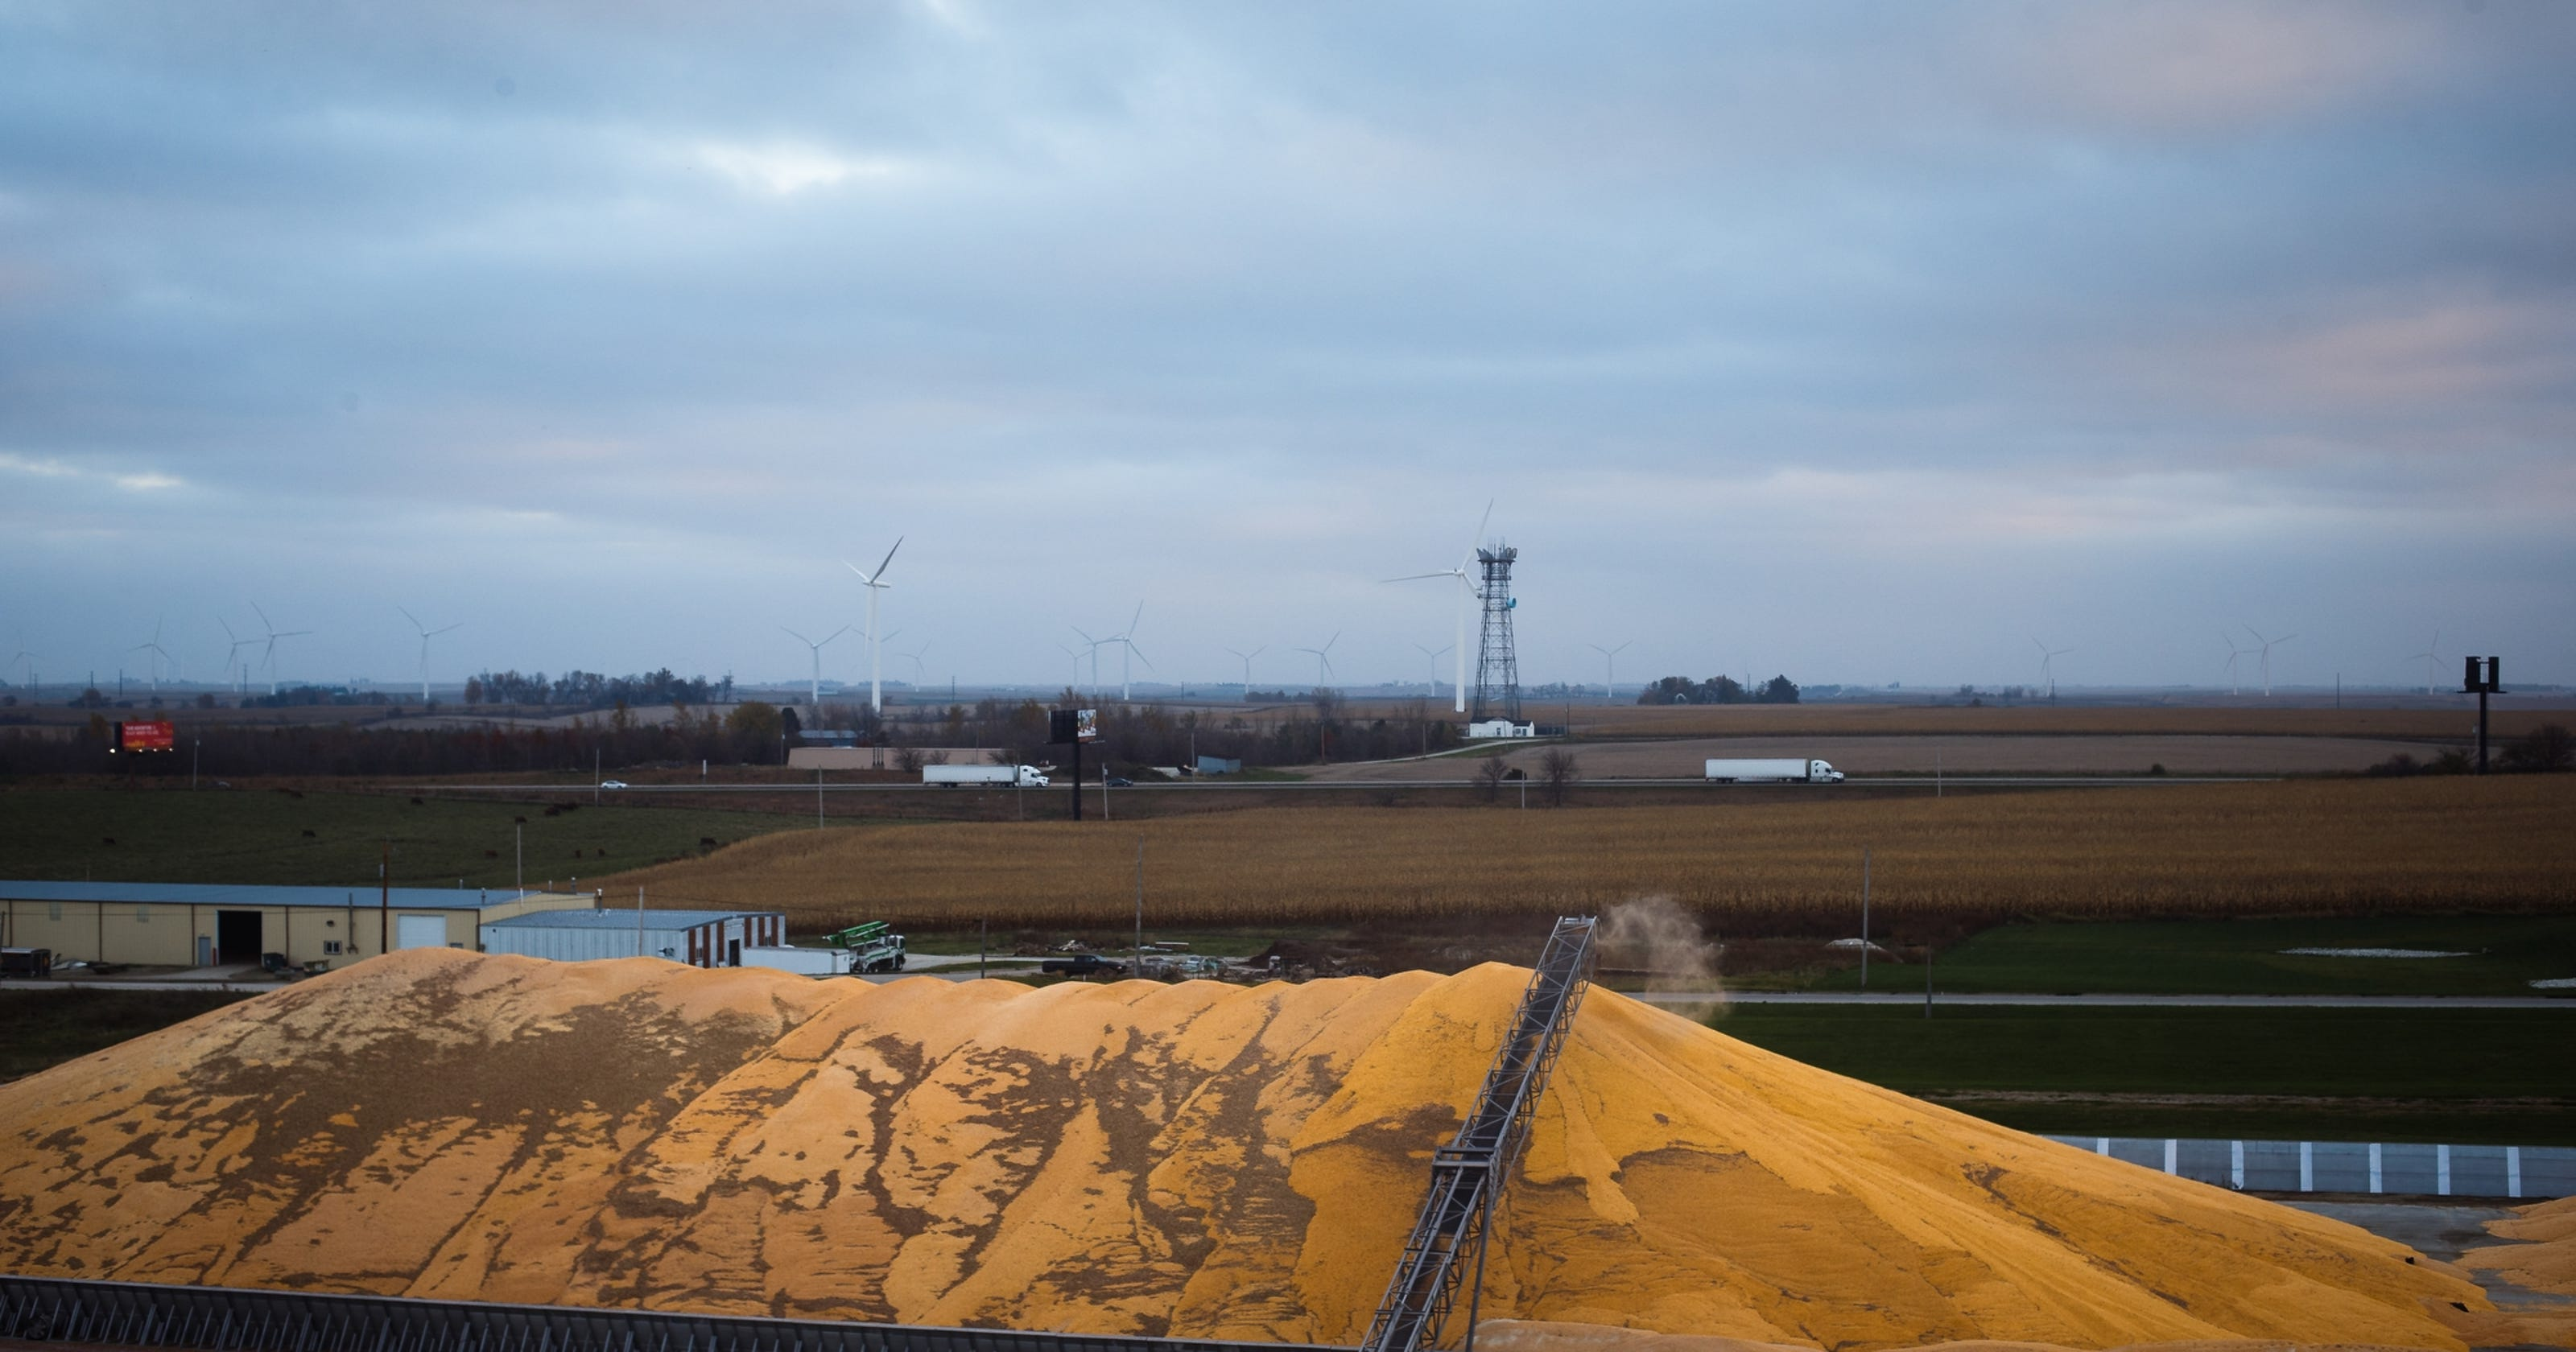 Record crops + low prices = mountains of grain